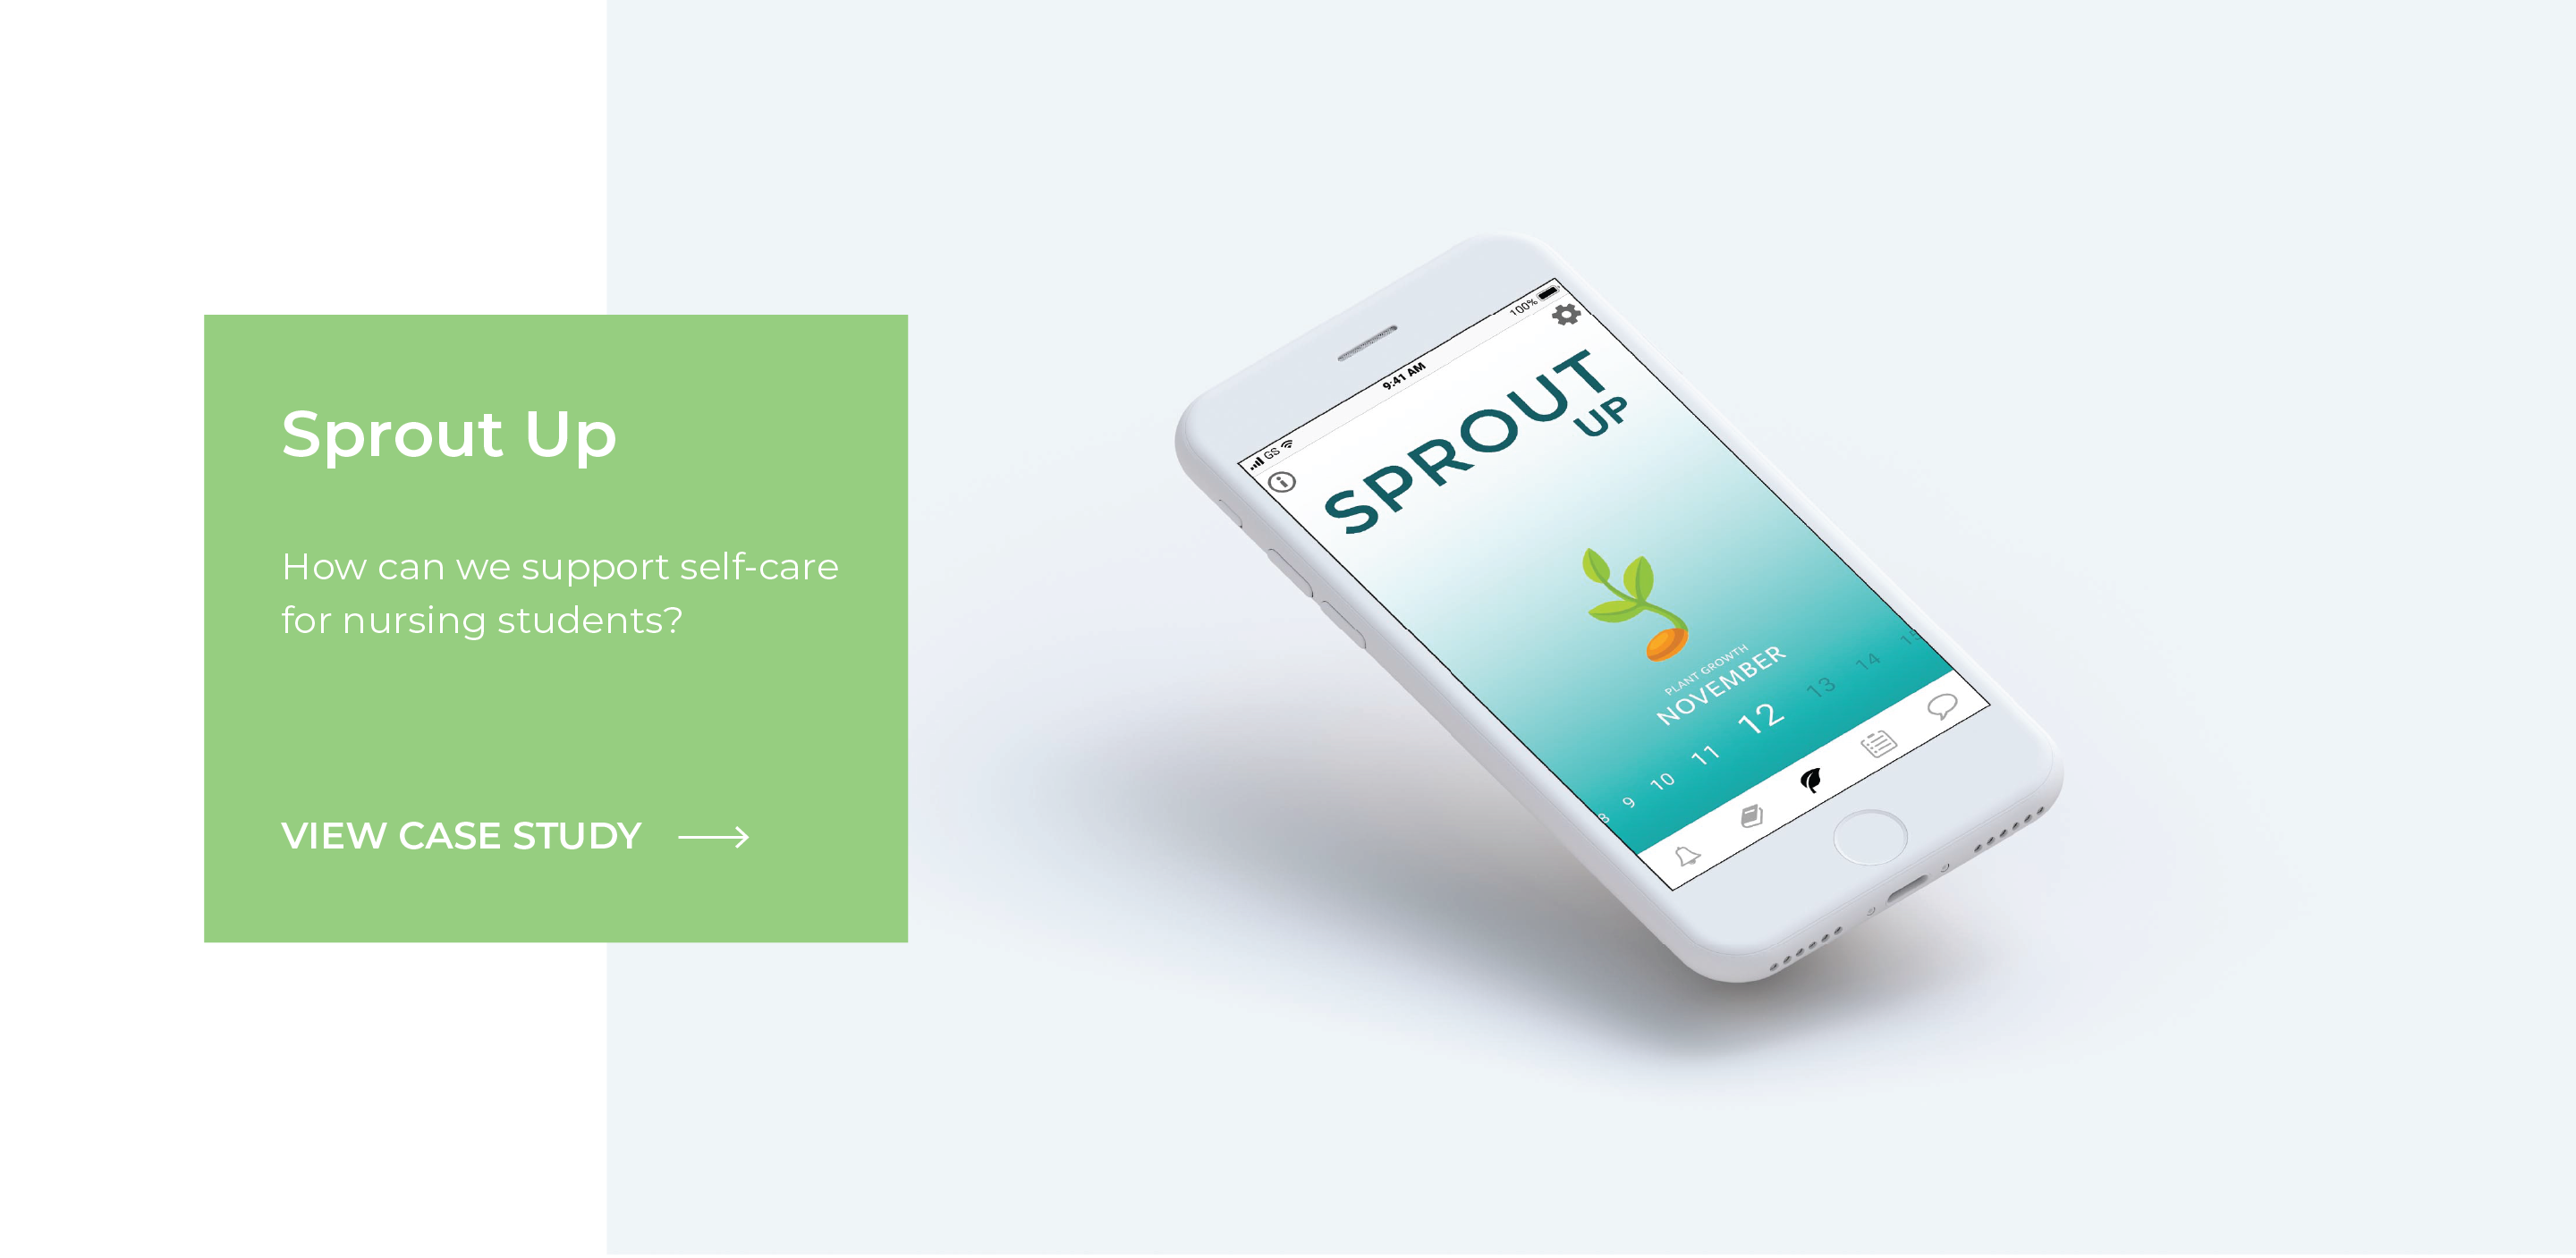 Sproutup